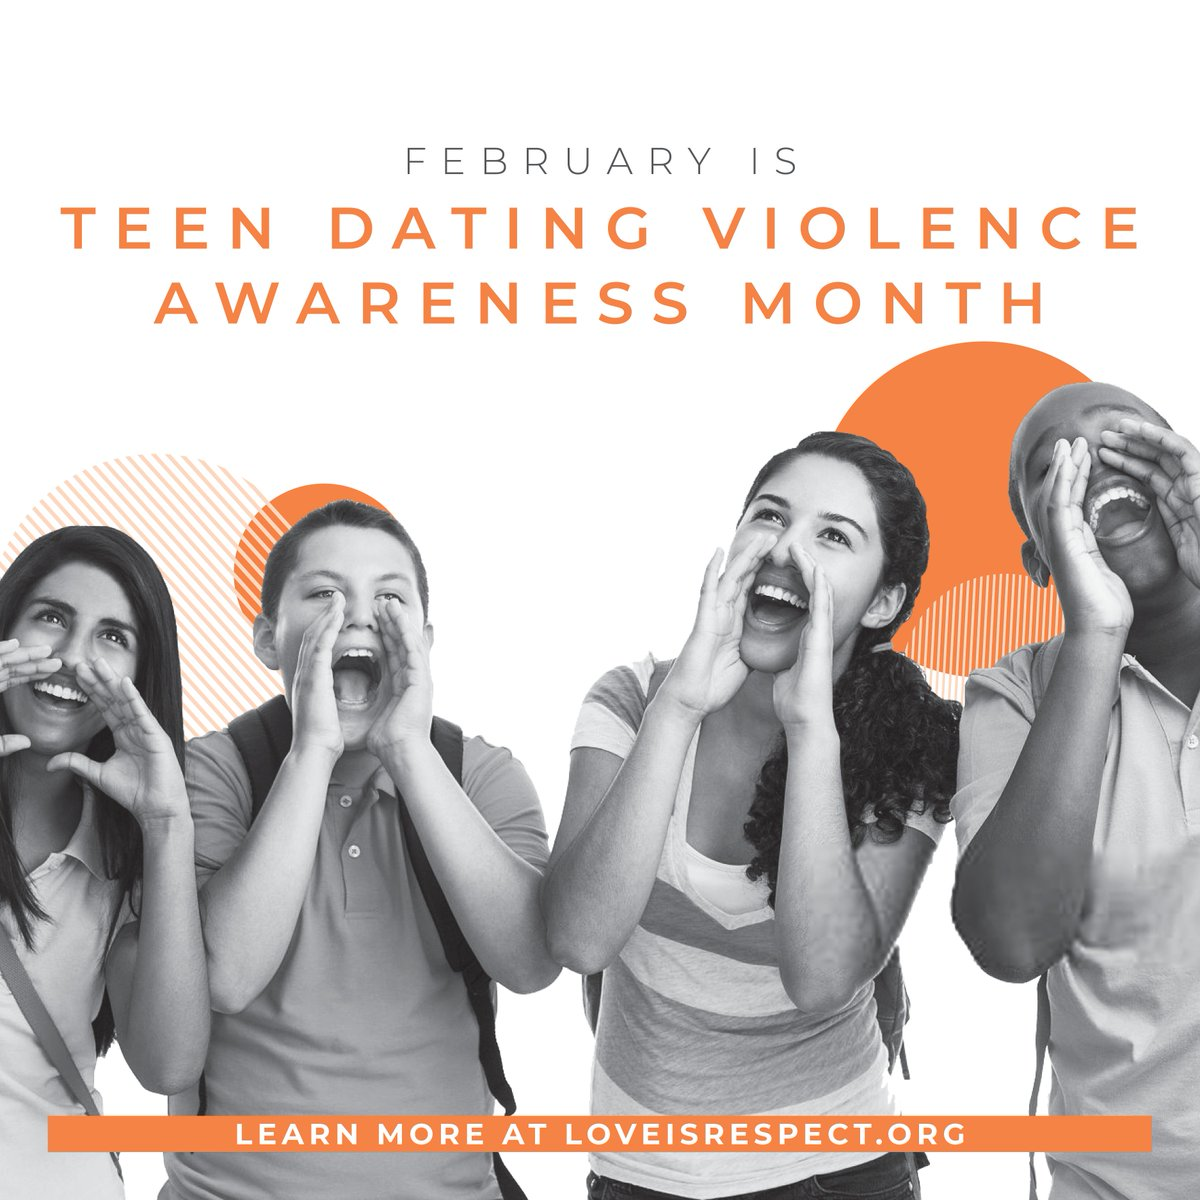 Did you know that February is Teen Dating Violence Awareness Month?  #HuddleUp for #HealthyRelationships during #TeenDVMonth to show the world what healthy relationships look like. Head to @loveisrespect for more info on how your voice can be a tool for change!